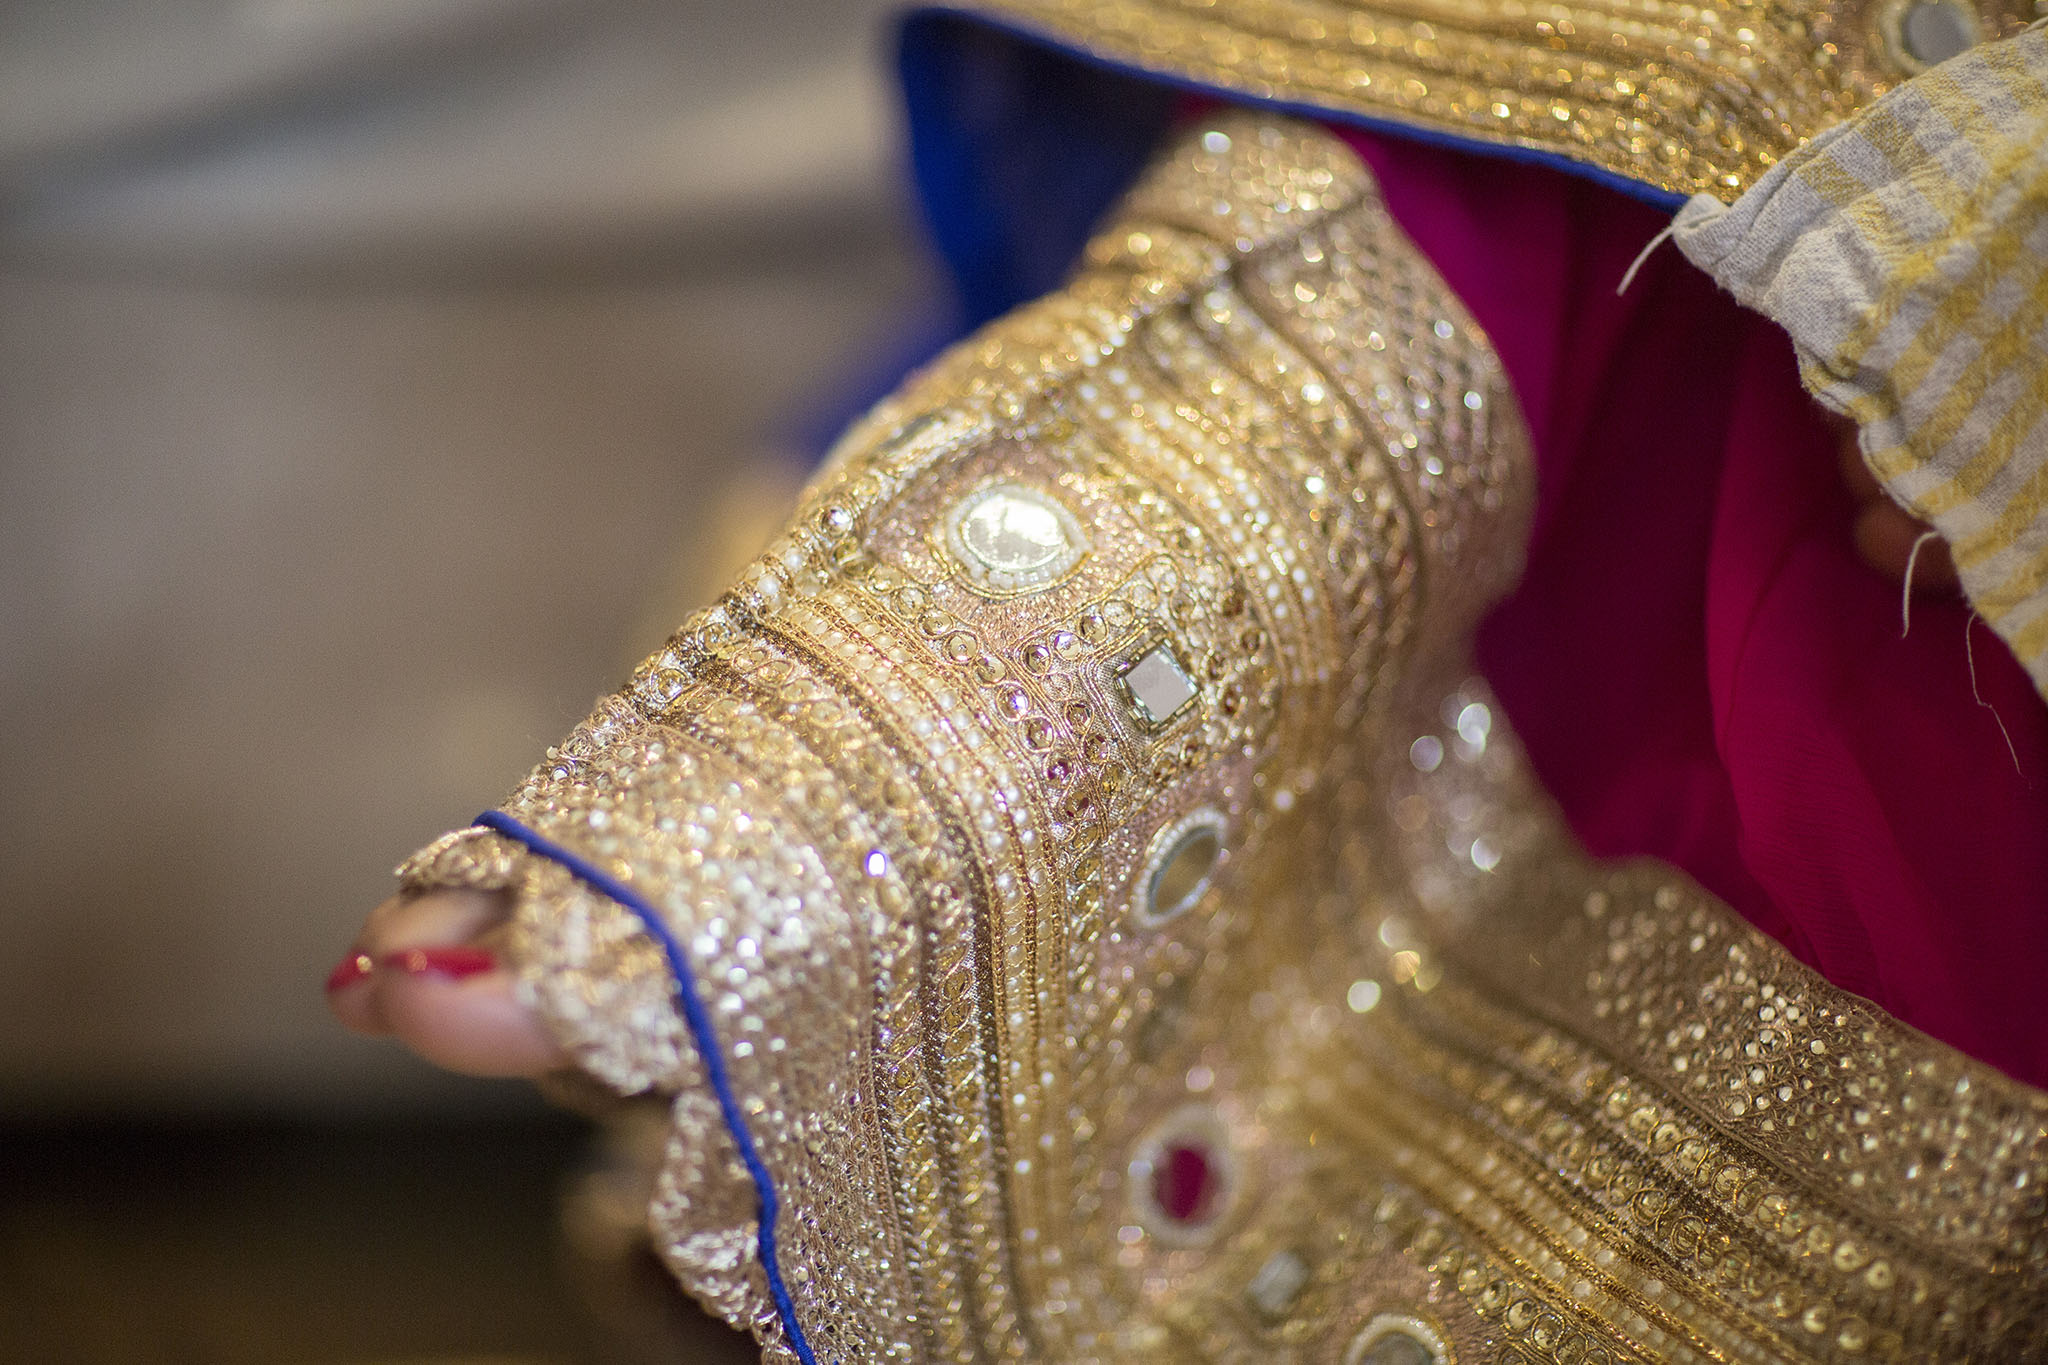 elizabethgphotography_kingslangley_hertfordshire_fineart_indian_wedding_mehndi_photography_jigna_bhuja_01.jpg